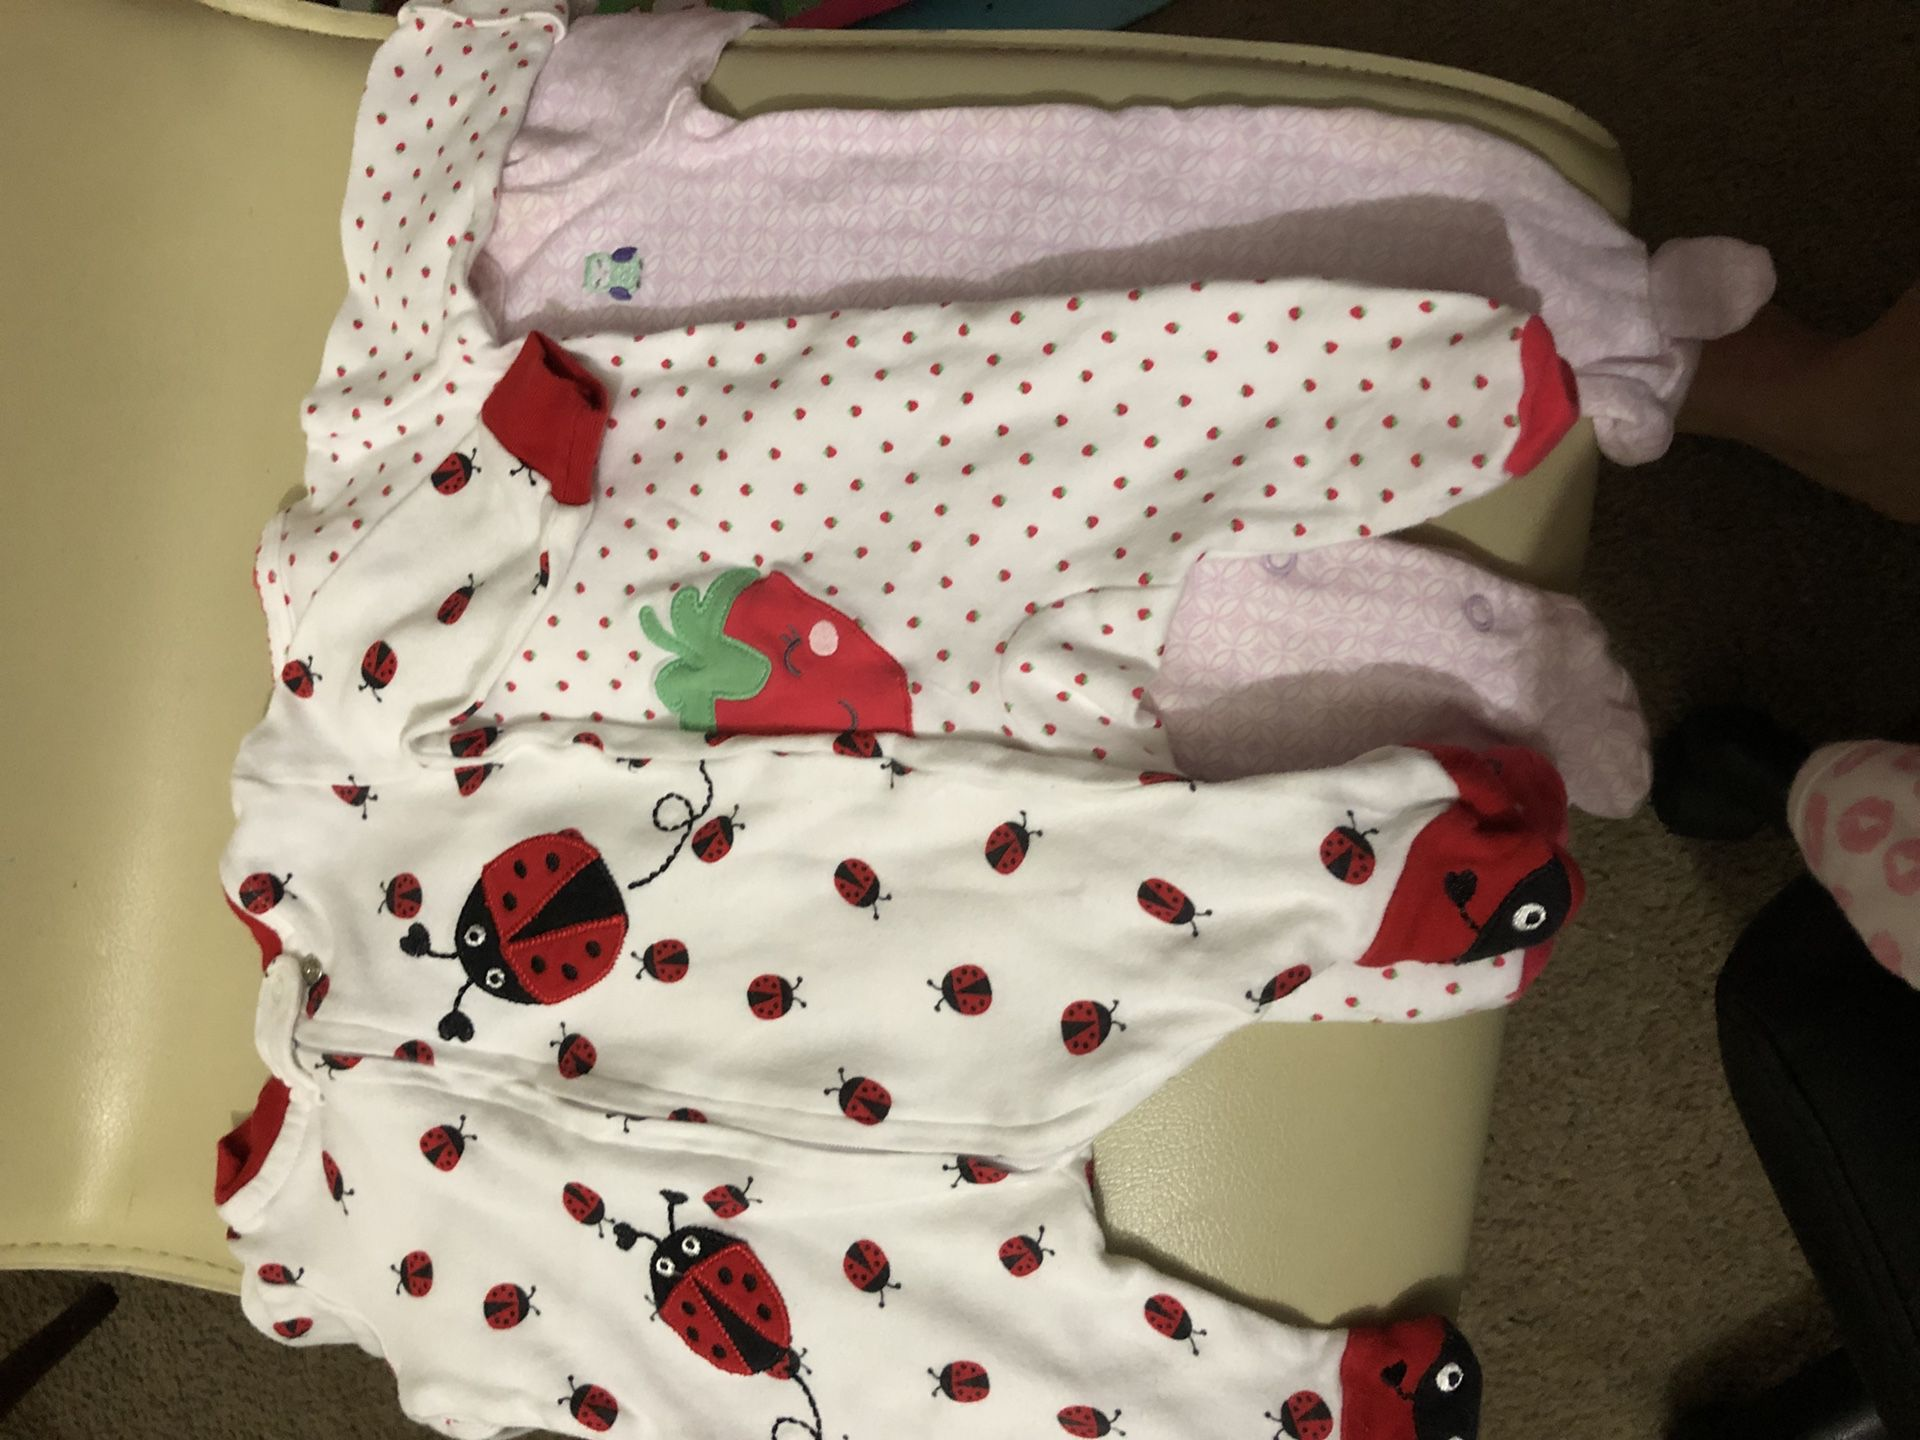 Baby girl clothes for sale $1 each , dresses at $5